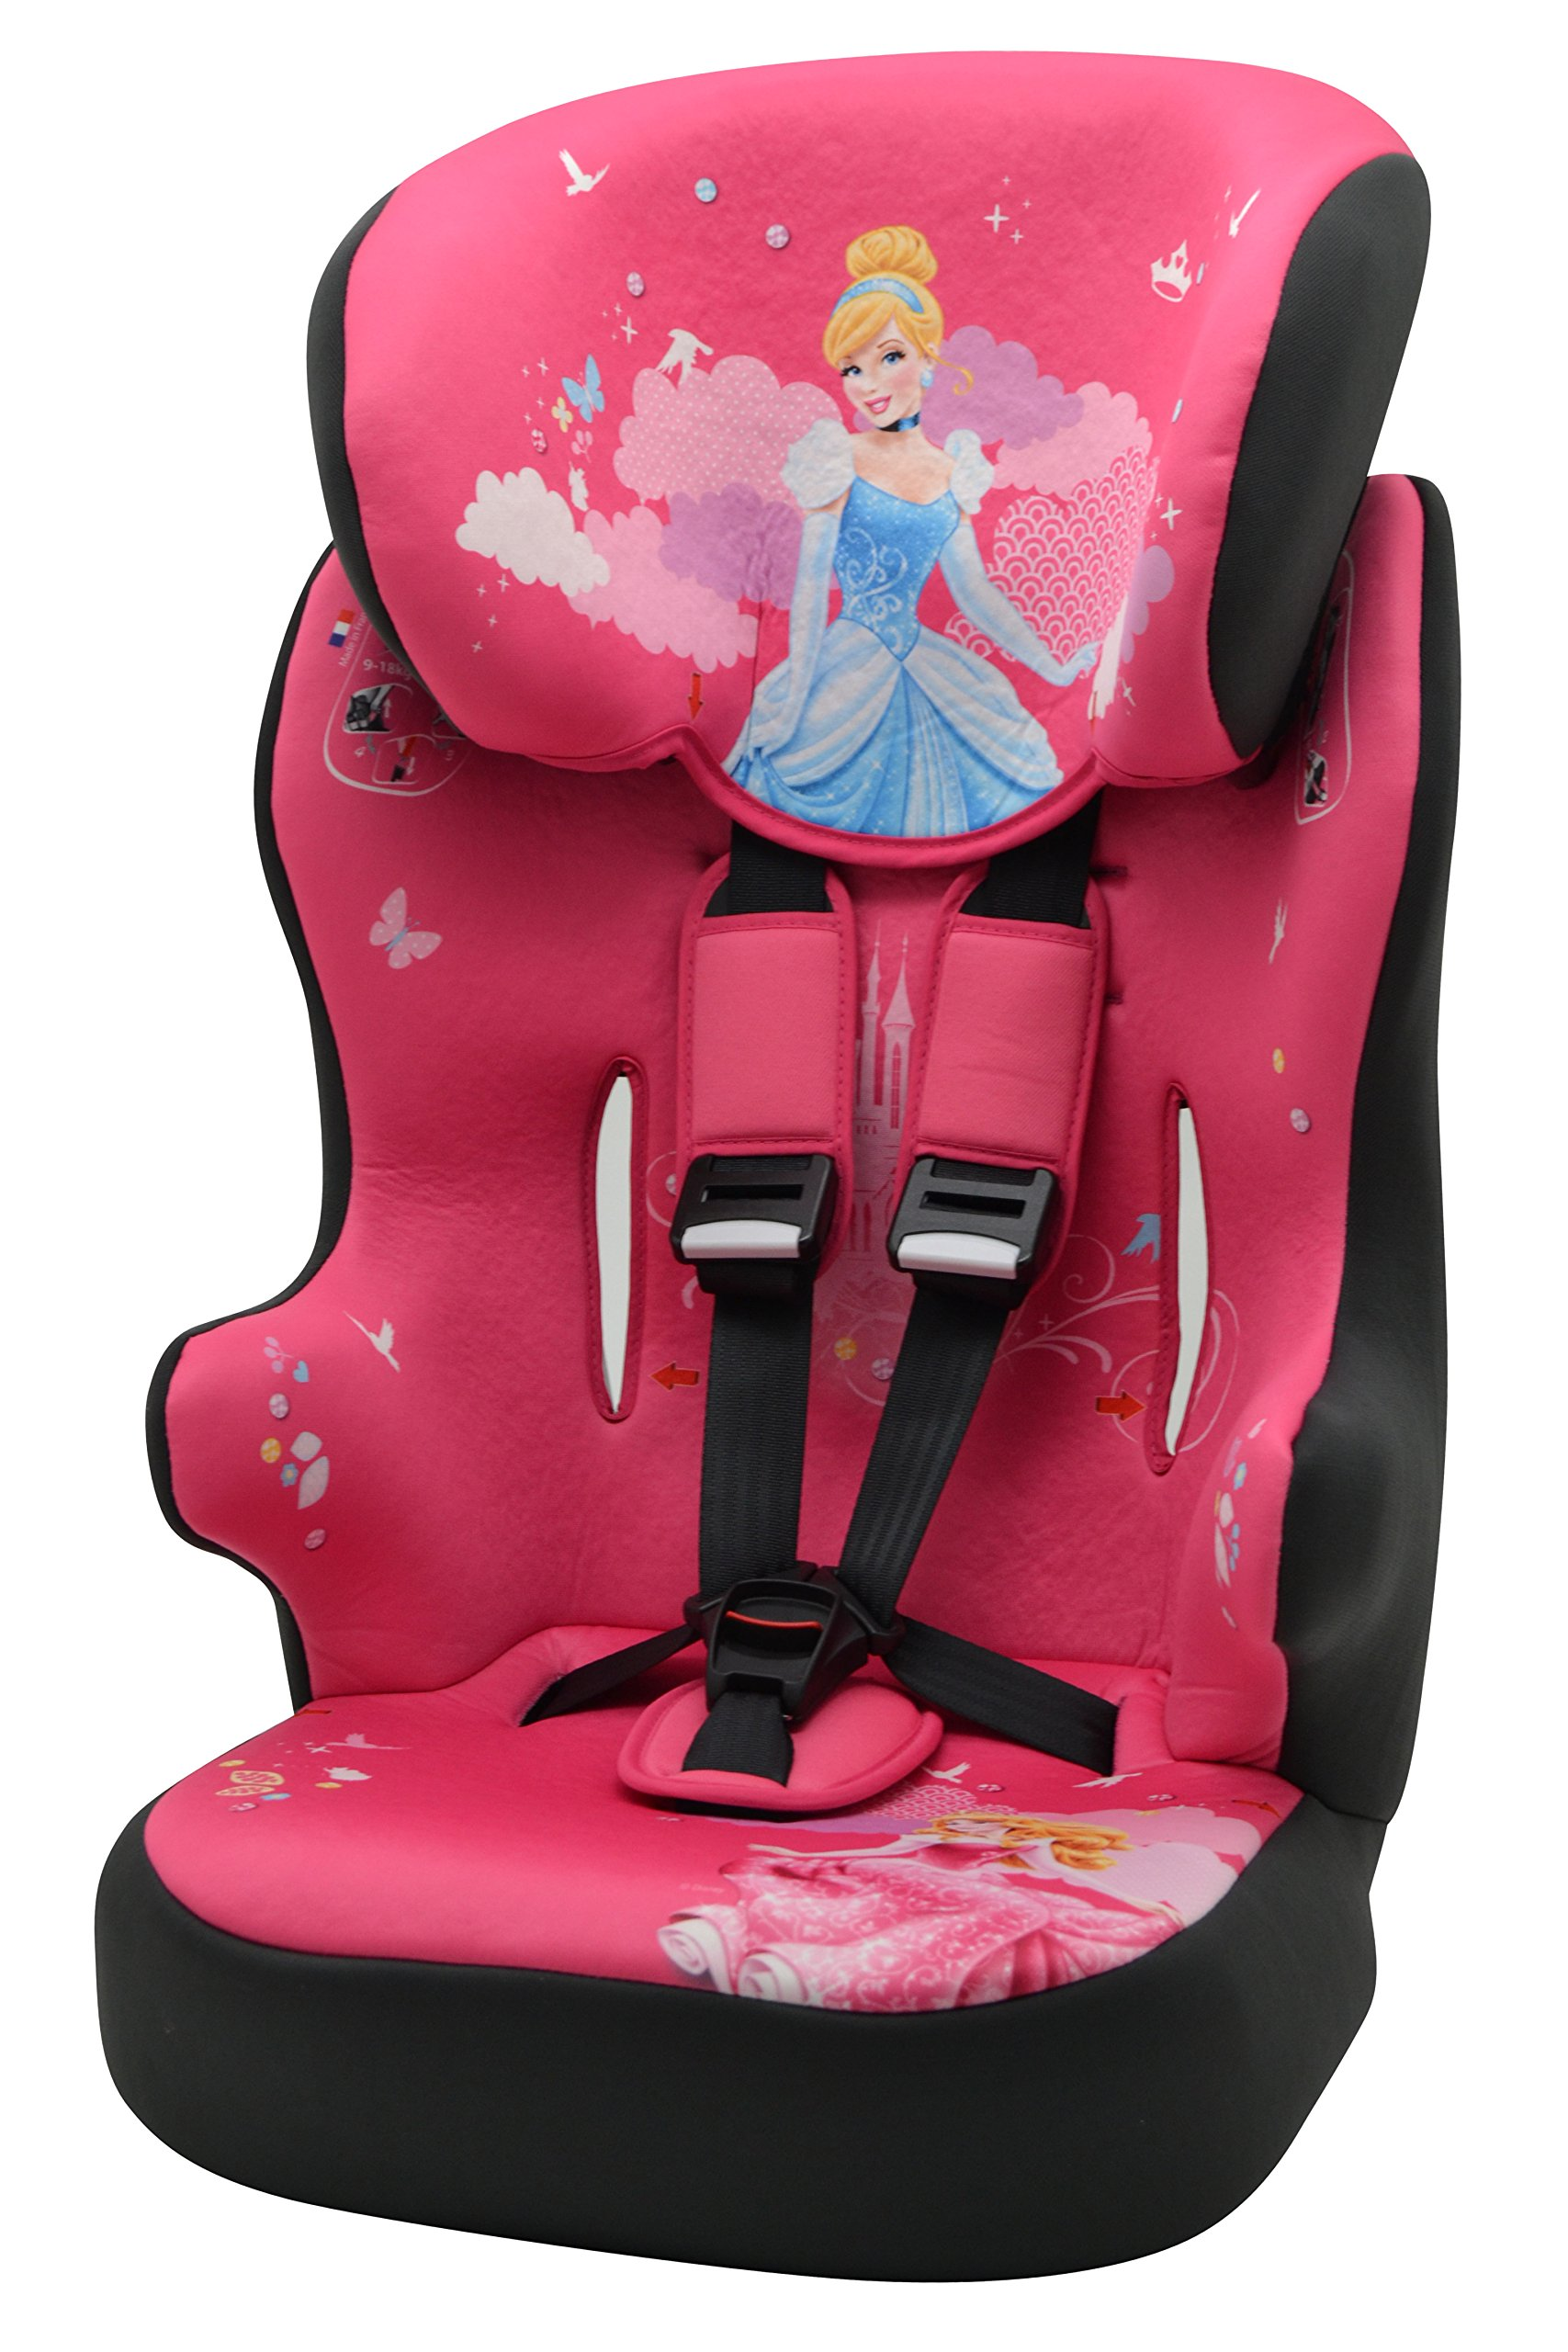 Racer Car Seat for Kids, Group 1/2/3 (9 to 36 kg), Disney Princess MyCarSit Lightweight, portable and secured car seat Side impact protection Individual harness tensioners 1